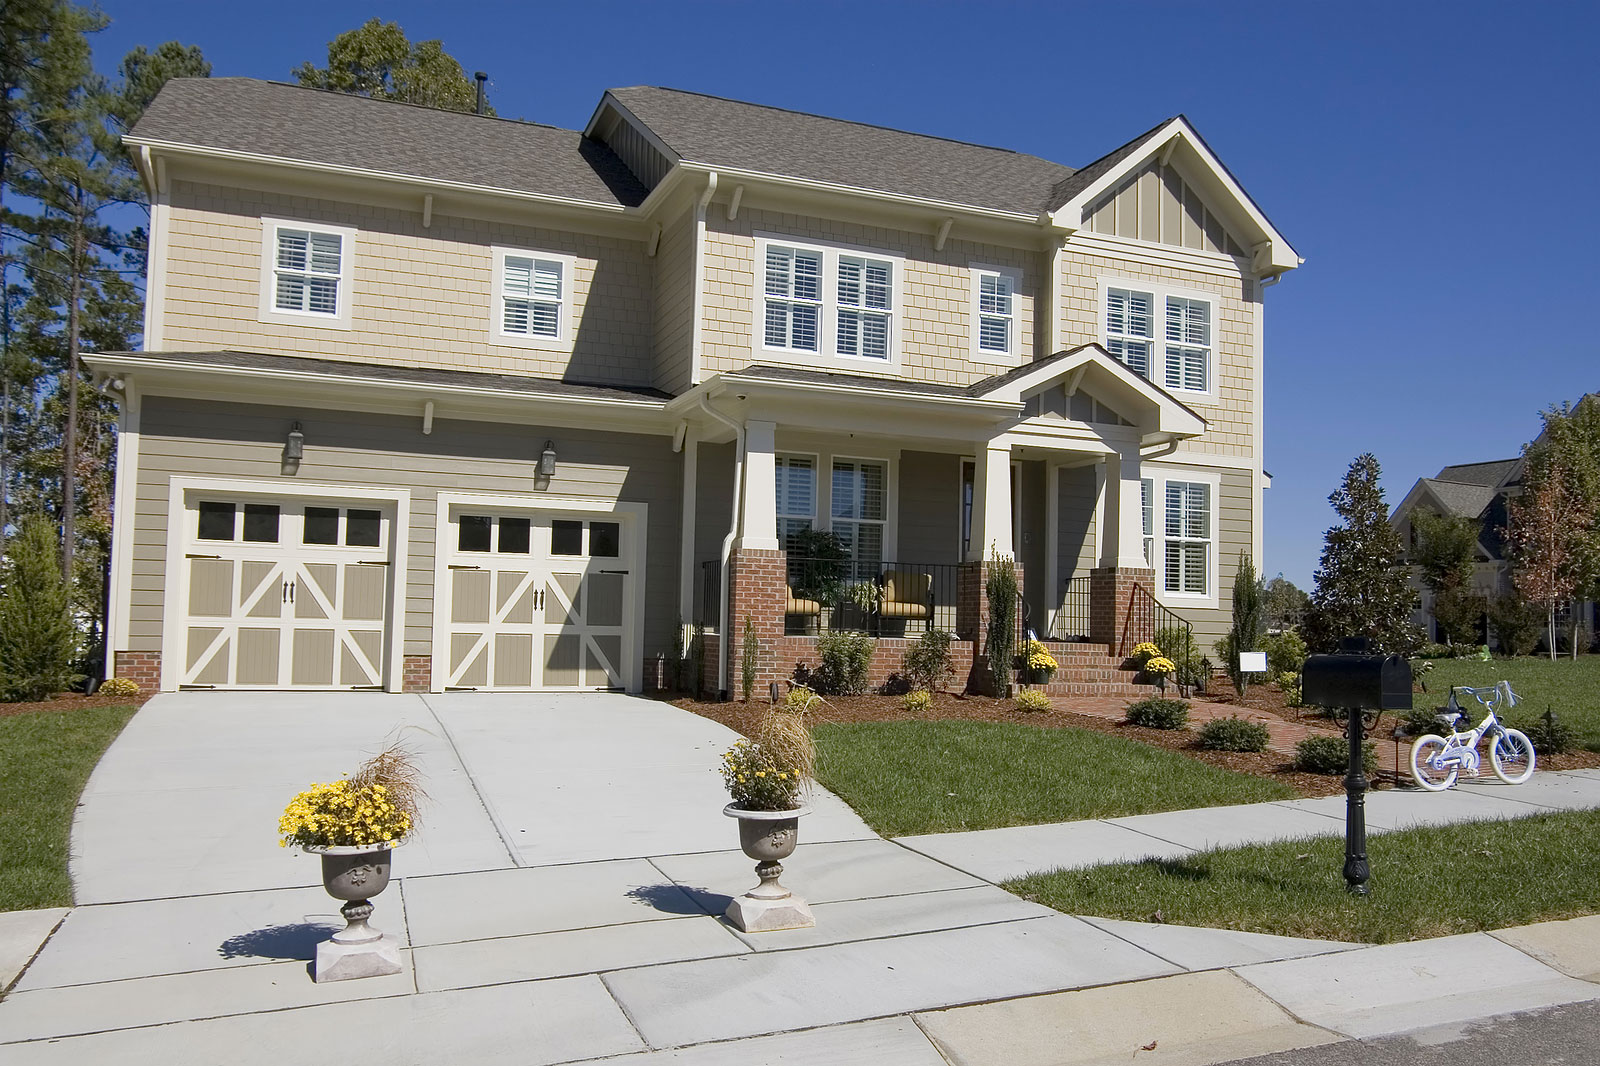 WHAT TO LOOK FOR WHEN BUYING A NEW GARAGE DOOR